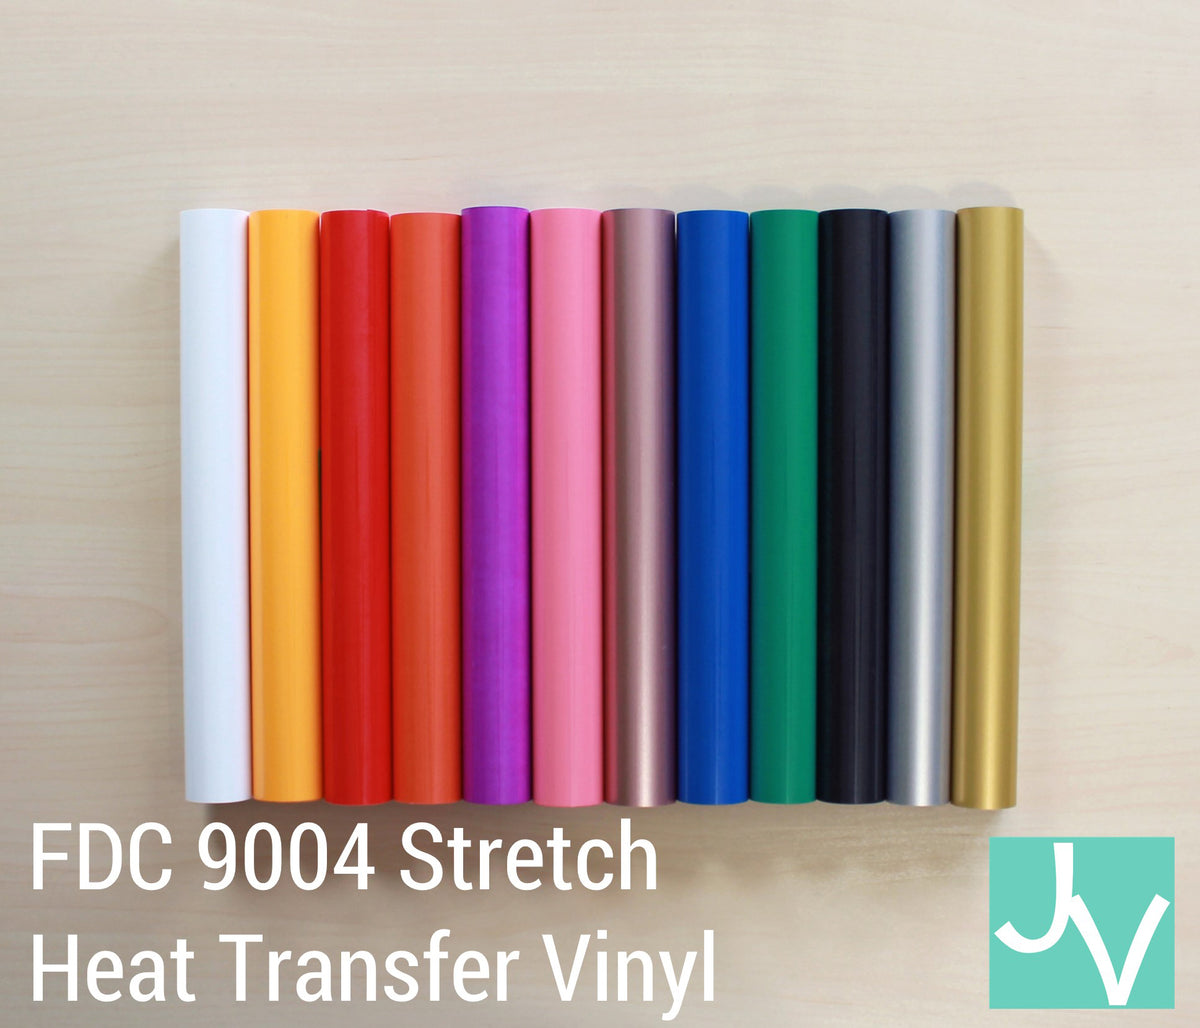 Stretch Heat Transfer Vinyl